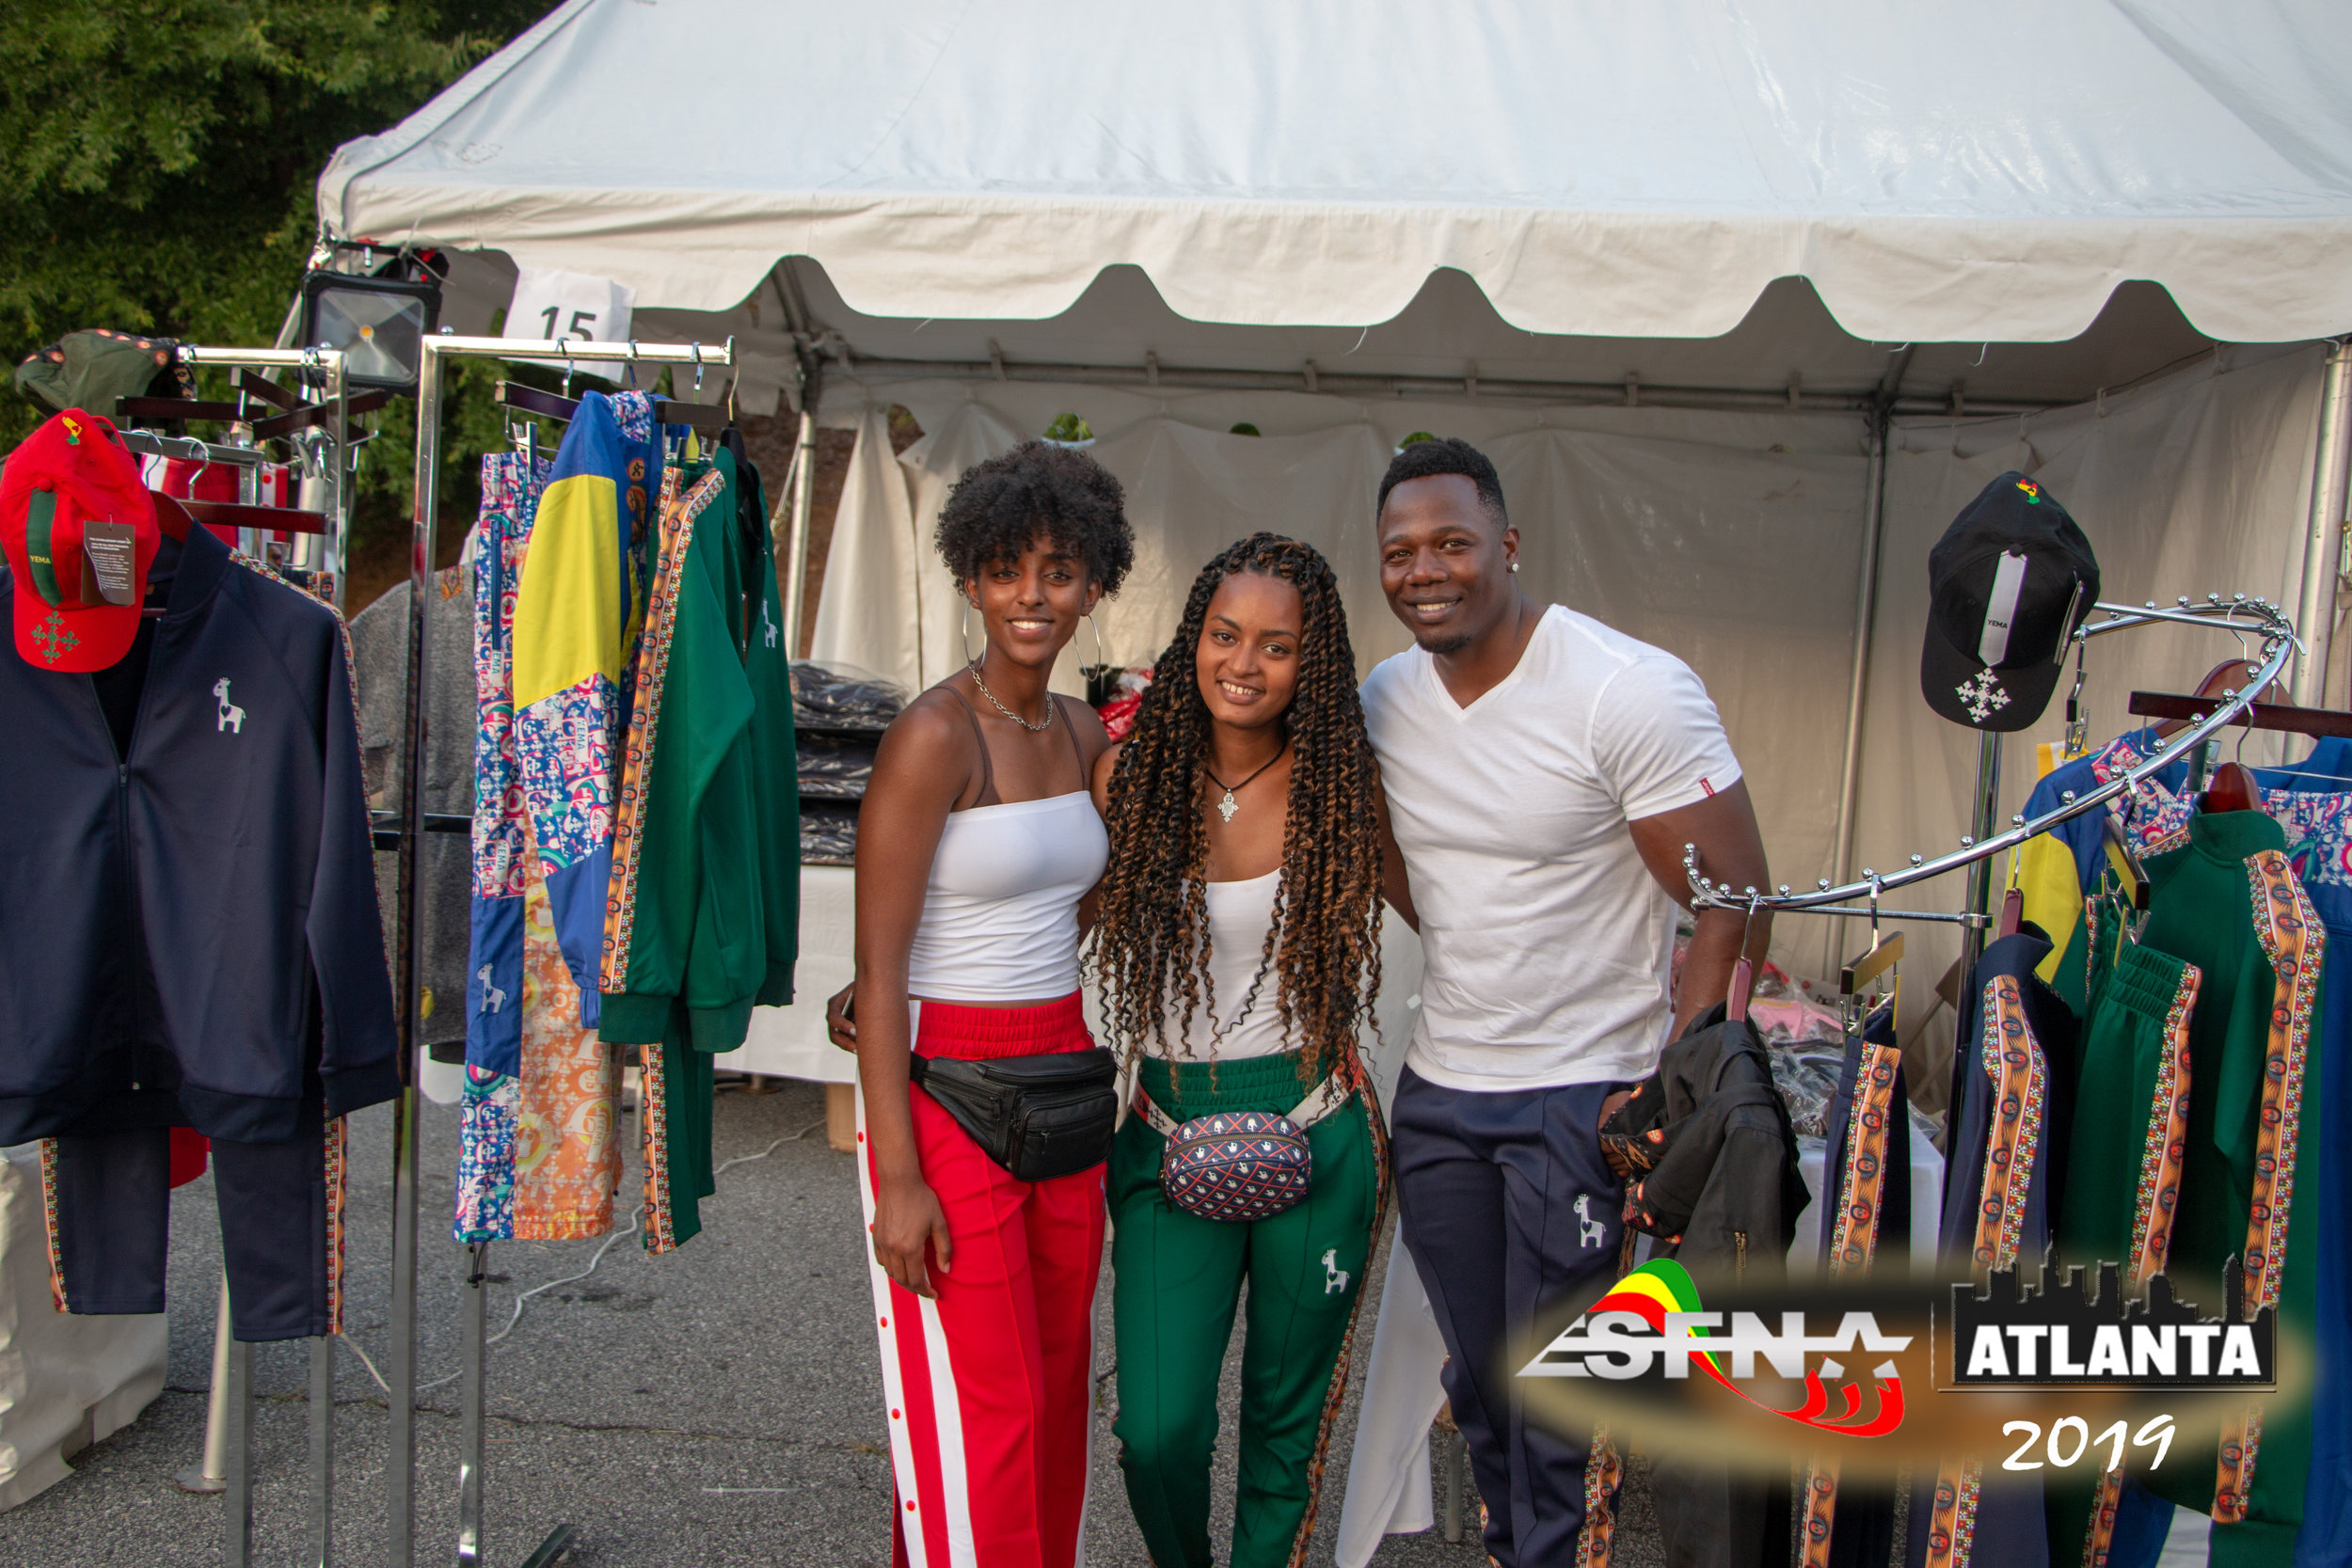 Atlanta, Georgia 2019 ESFNA Event - We brought the heat to Atlanta and had so much fun at the ESFNA 2019 event. We met so many cool people and made plenty of friends as well.Watch the video here